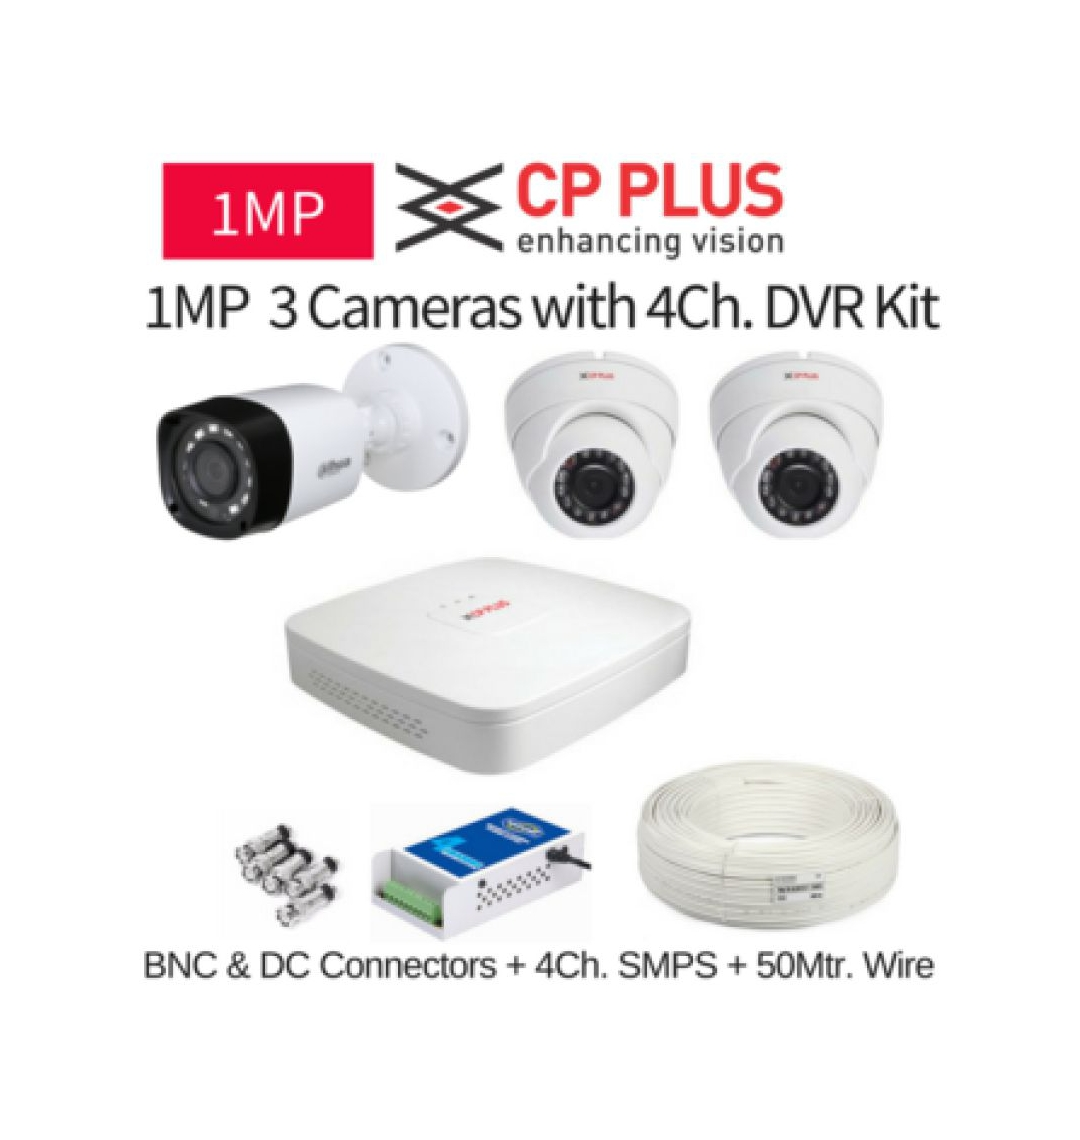 CP Plus 2.4 MP 3 CCTV Camera with DVR Kit with All Accessories